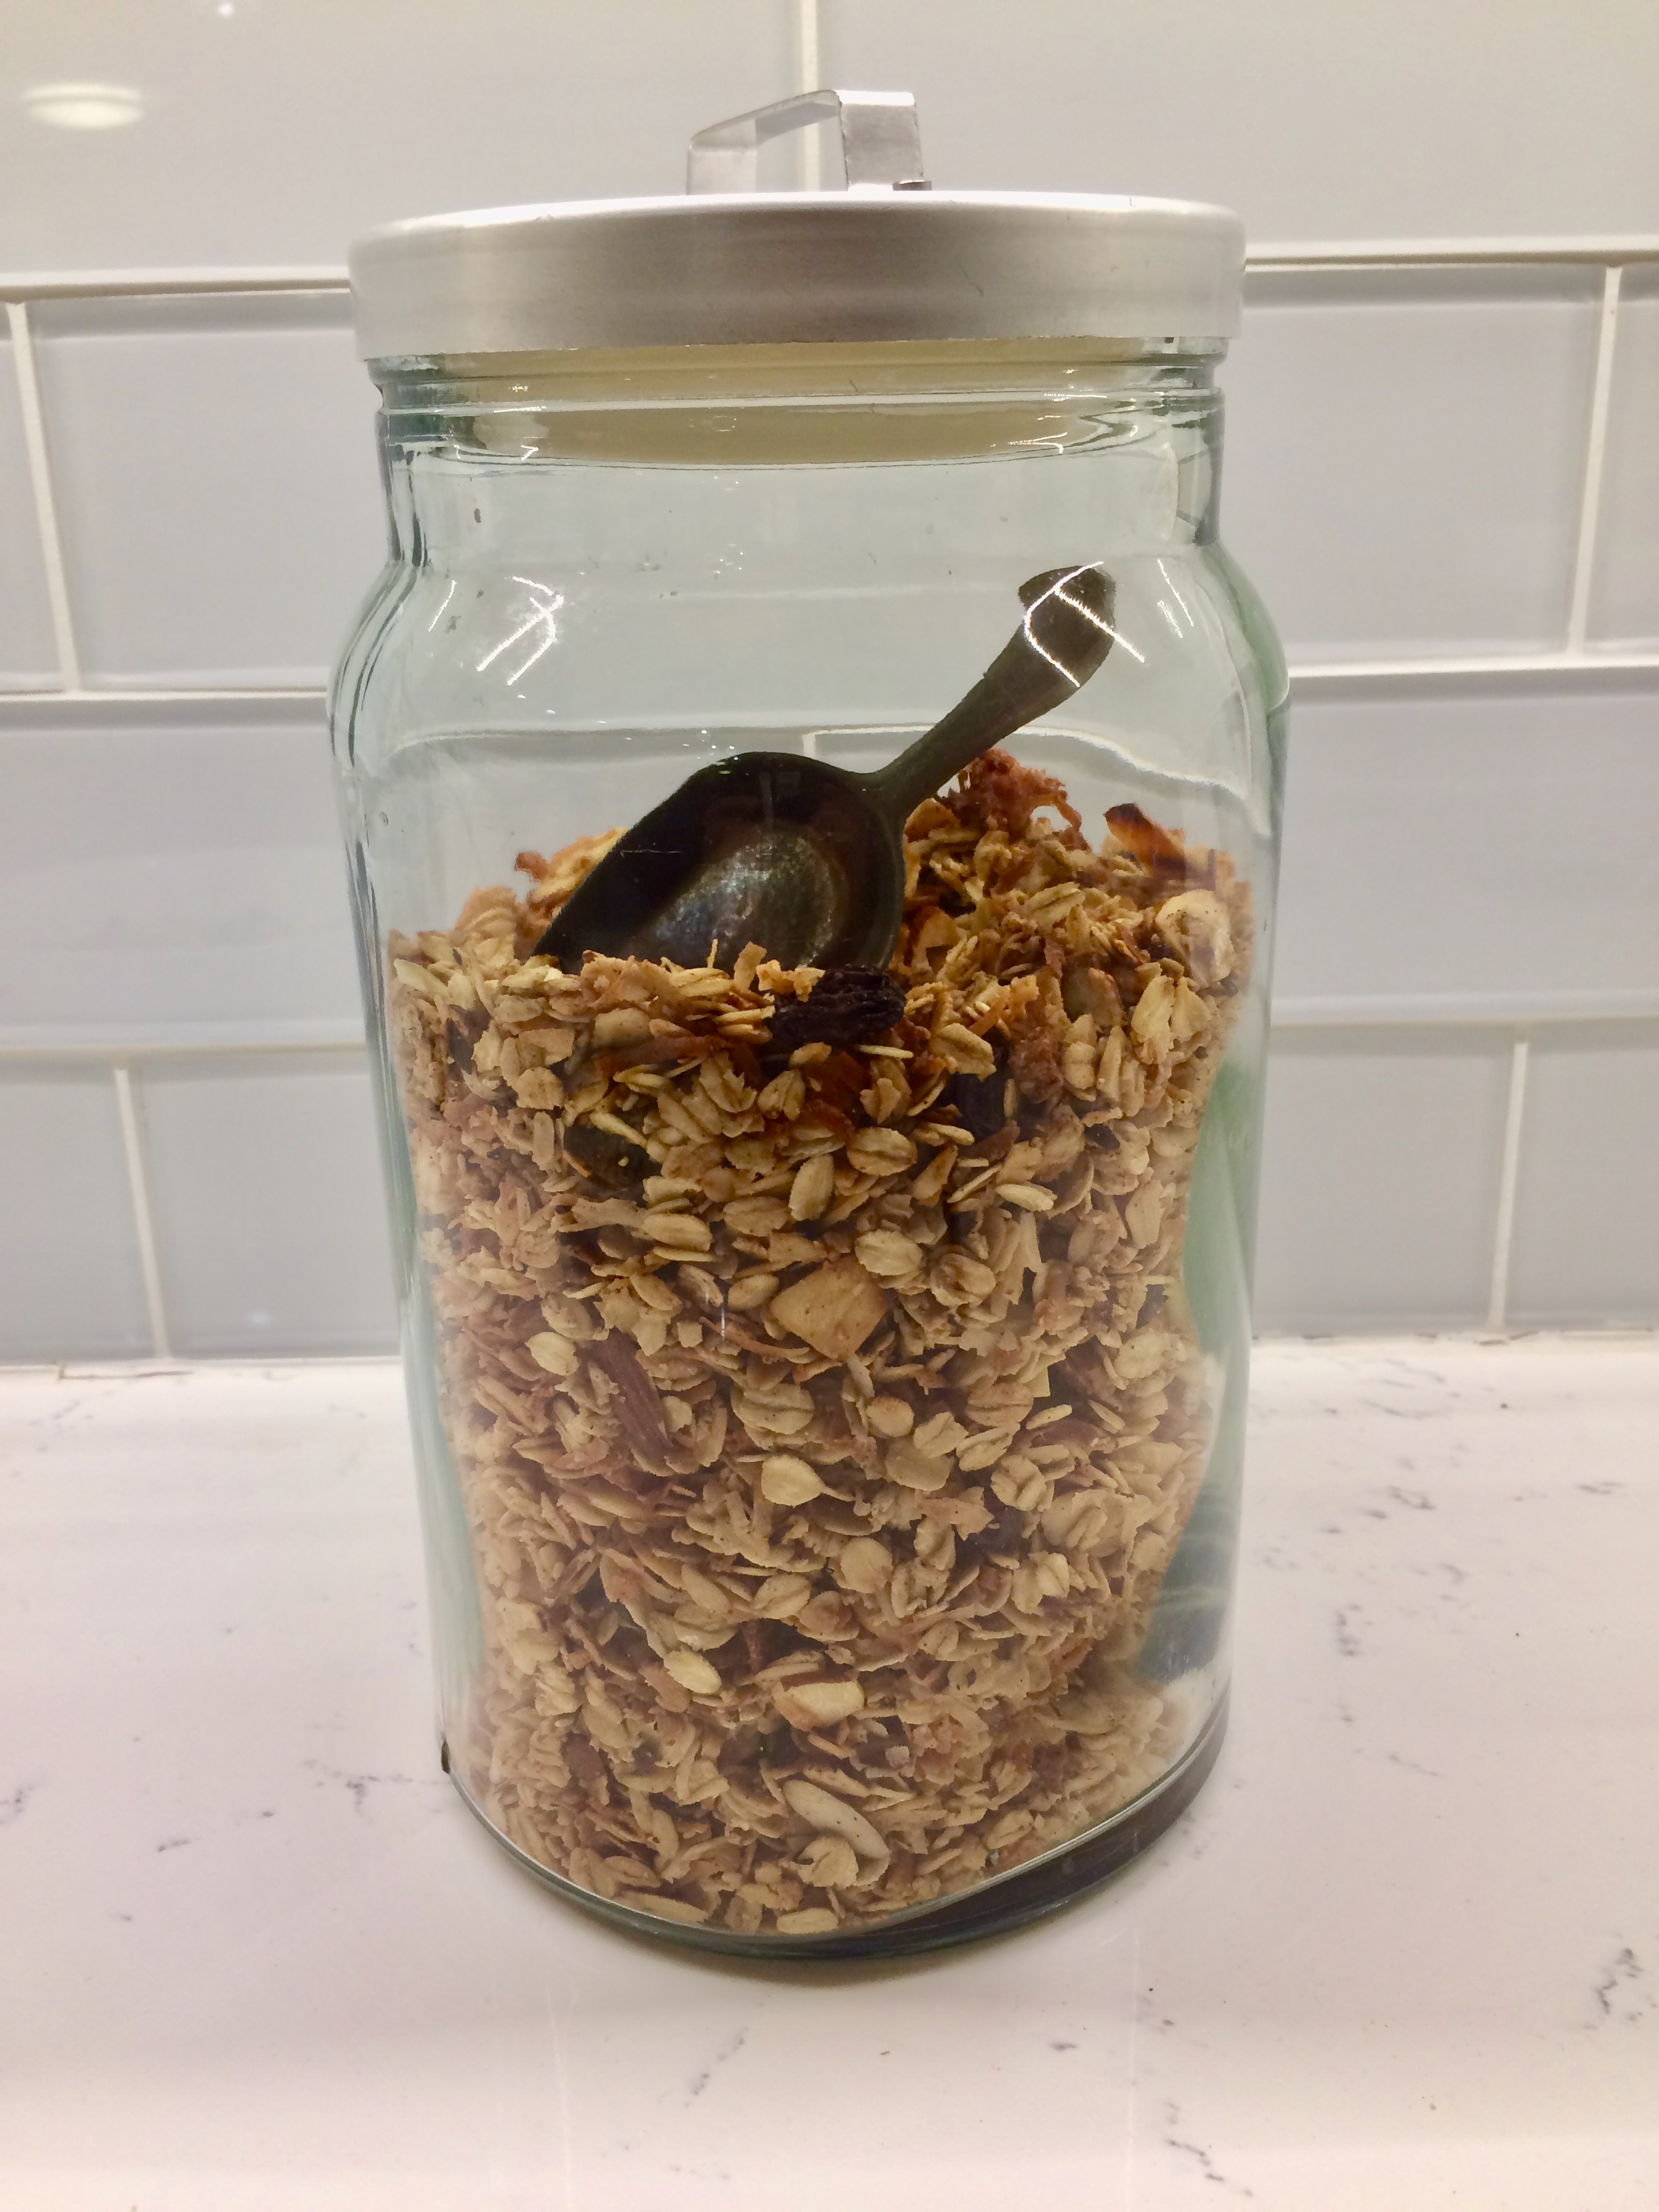 Store - Store in an airtight container. Enjoy!